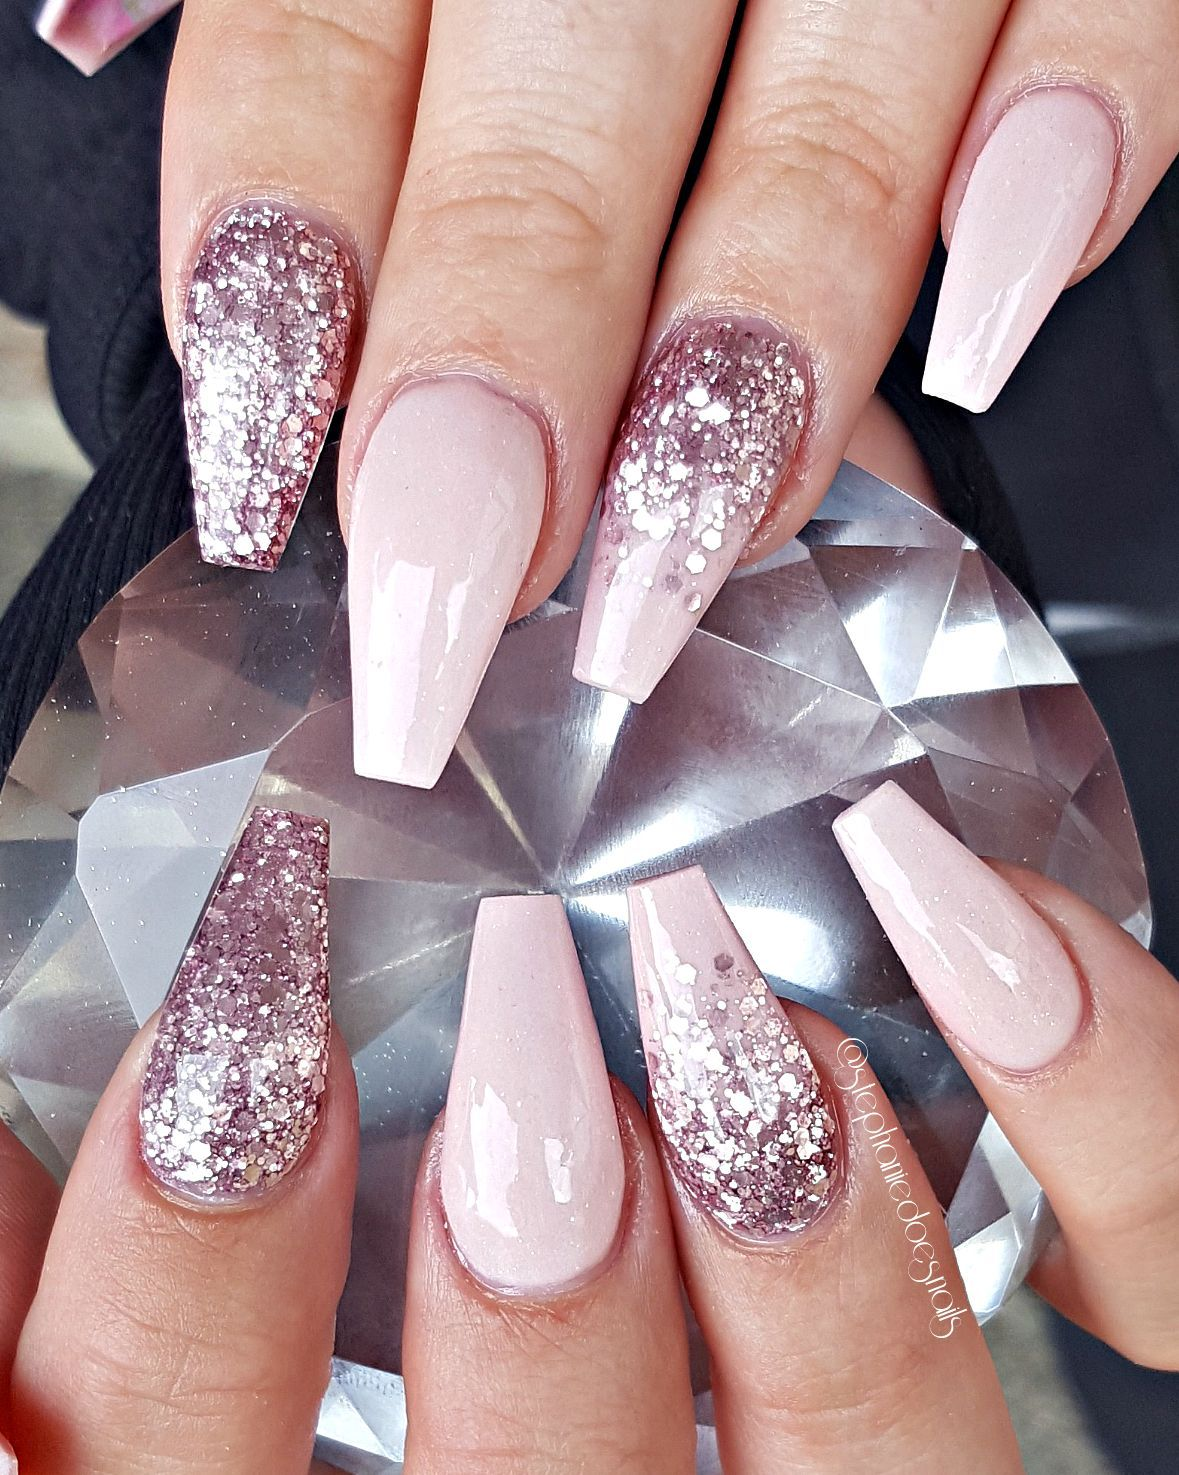 Acrylic nails - #nails #nail art #nail #nail polish #nail stickers ...